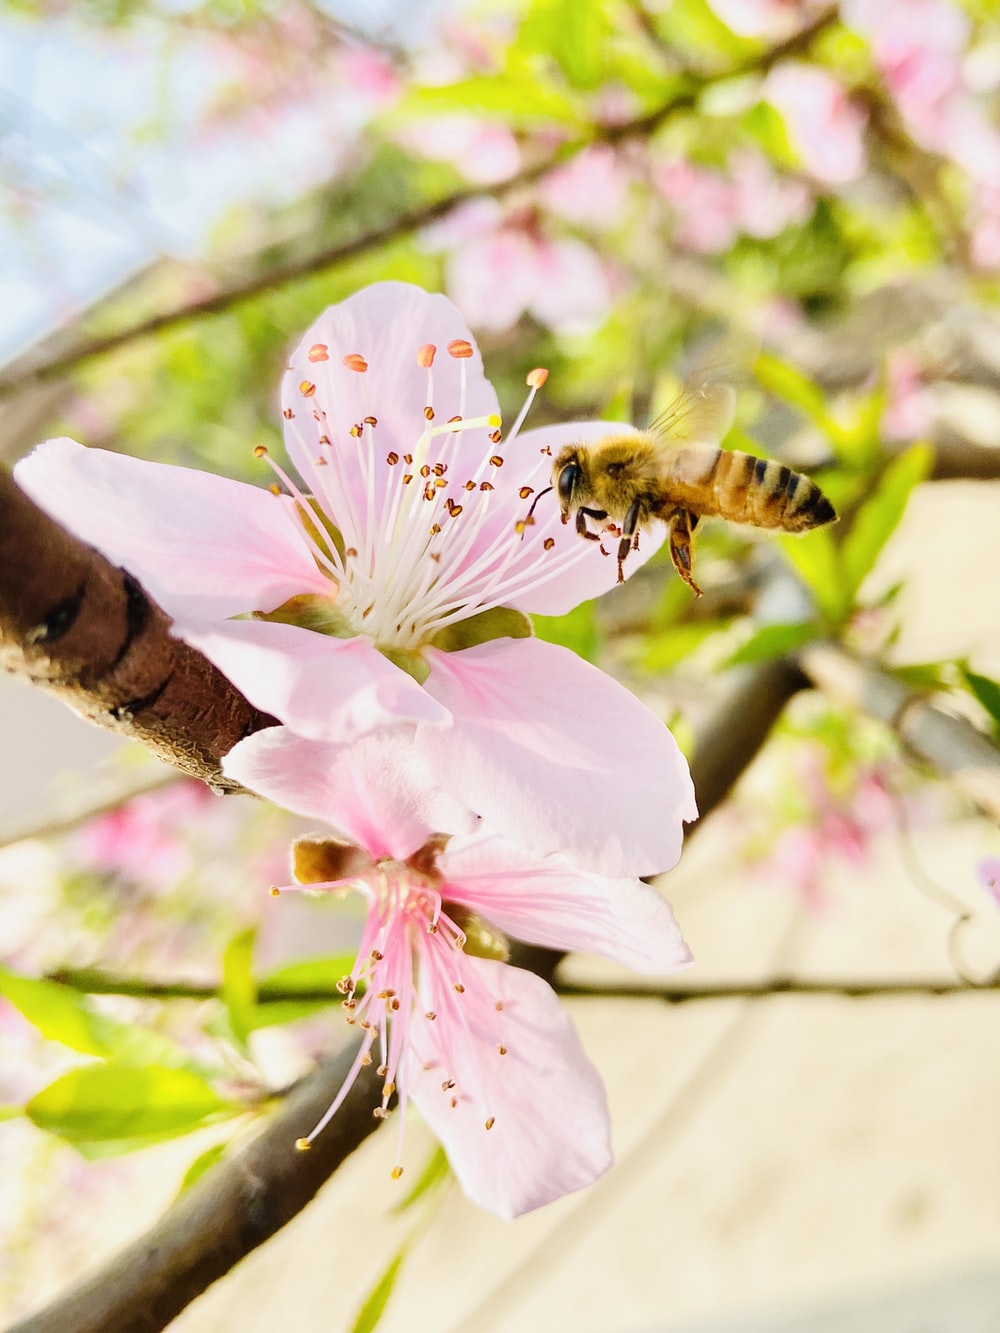 honeybee perched on pink flower during daytime